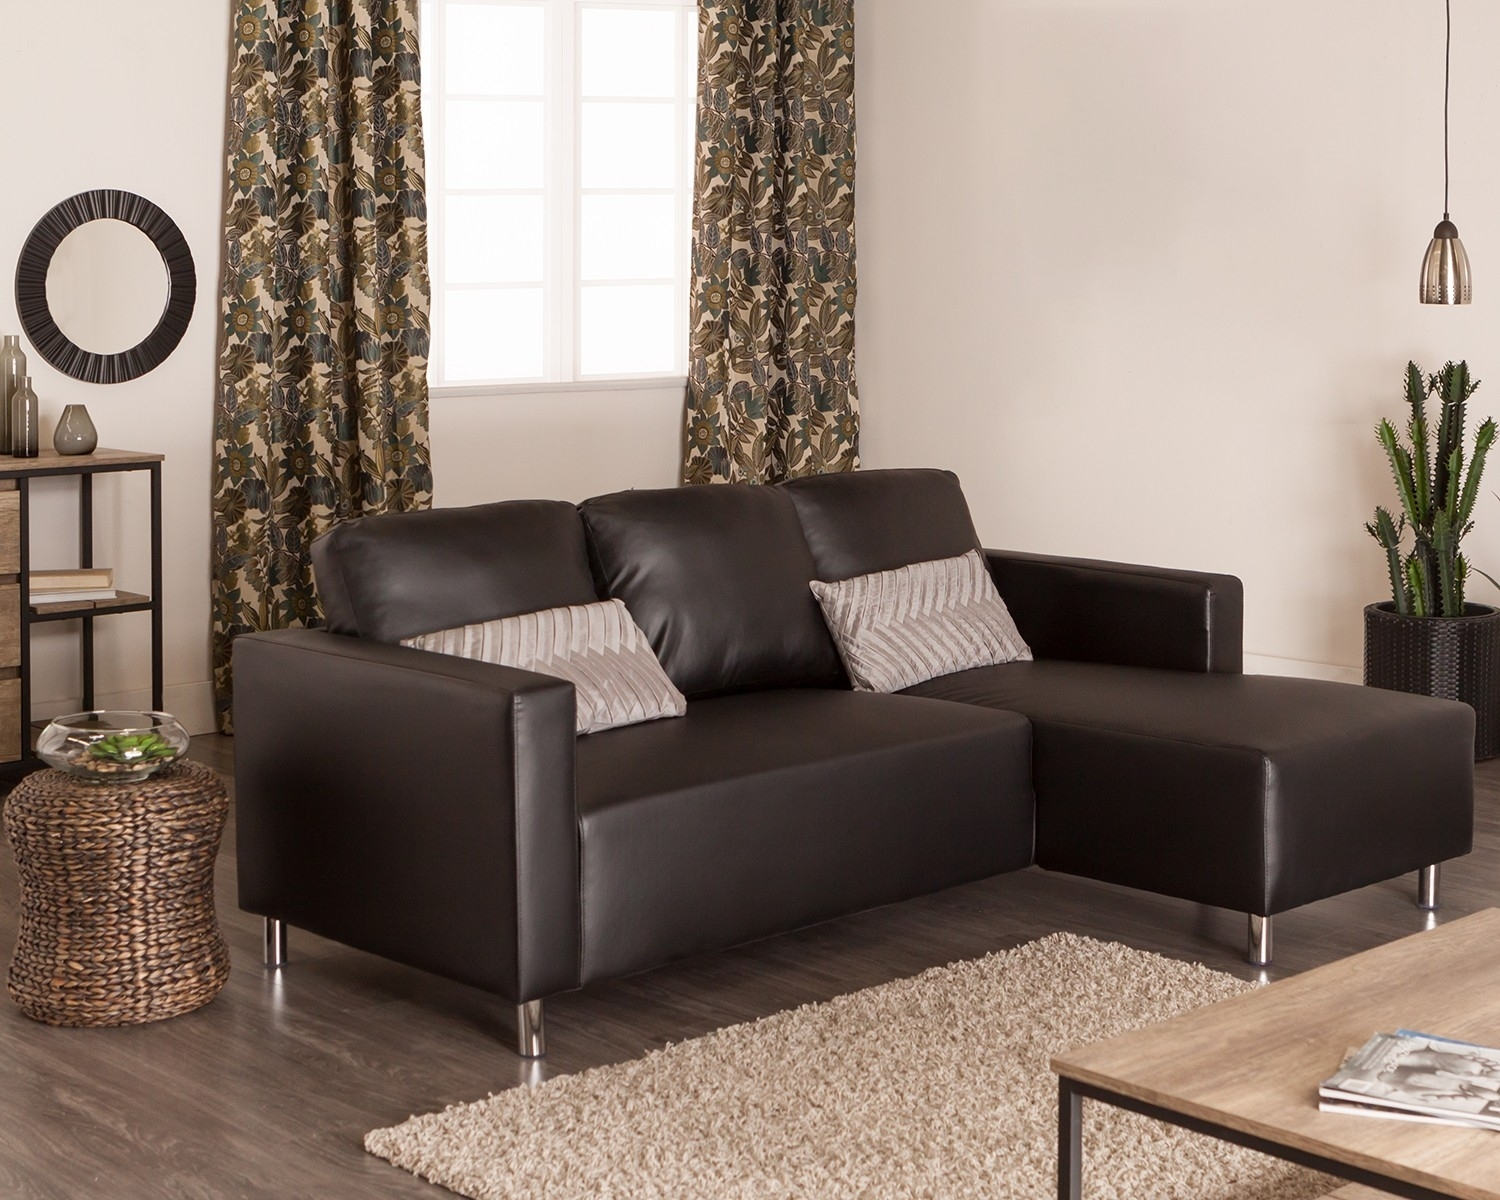 Jysk Sofas | Functionalities For Jysk Sectional Sofas (Image 8 of 10)